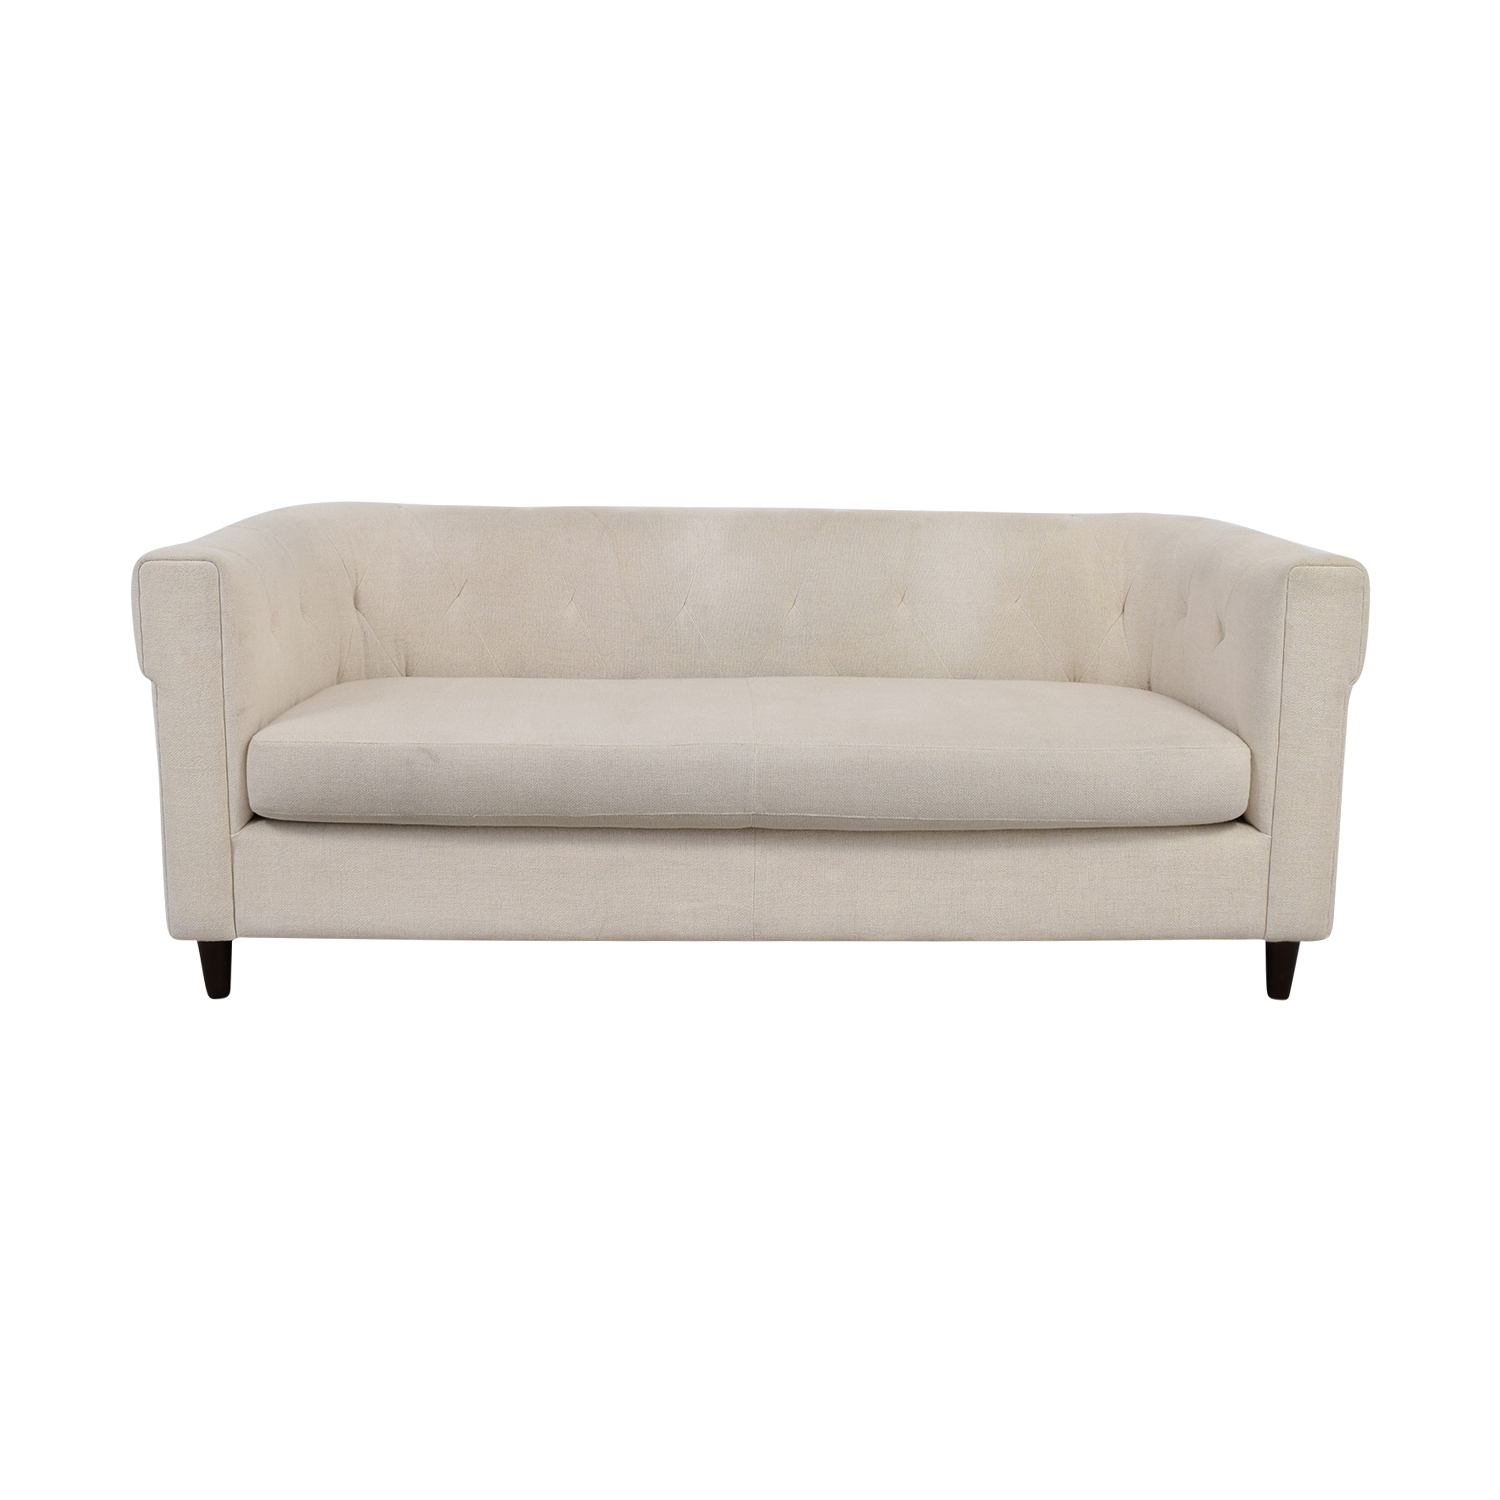 buy West Elm West Elm Chester Beige Tufted Sofa online ...